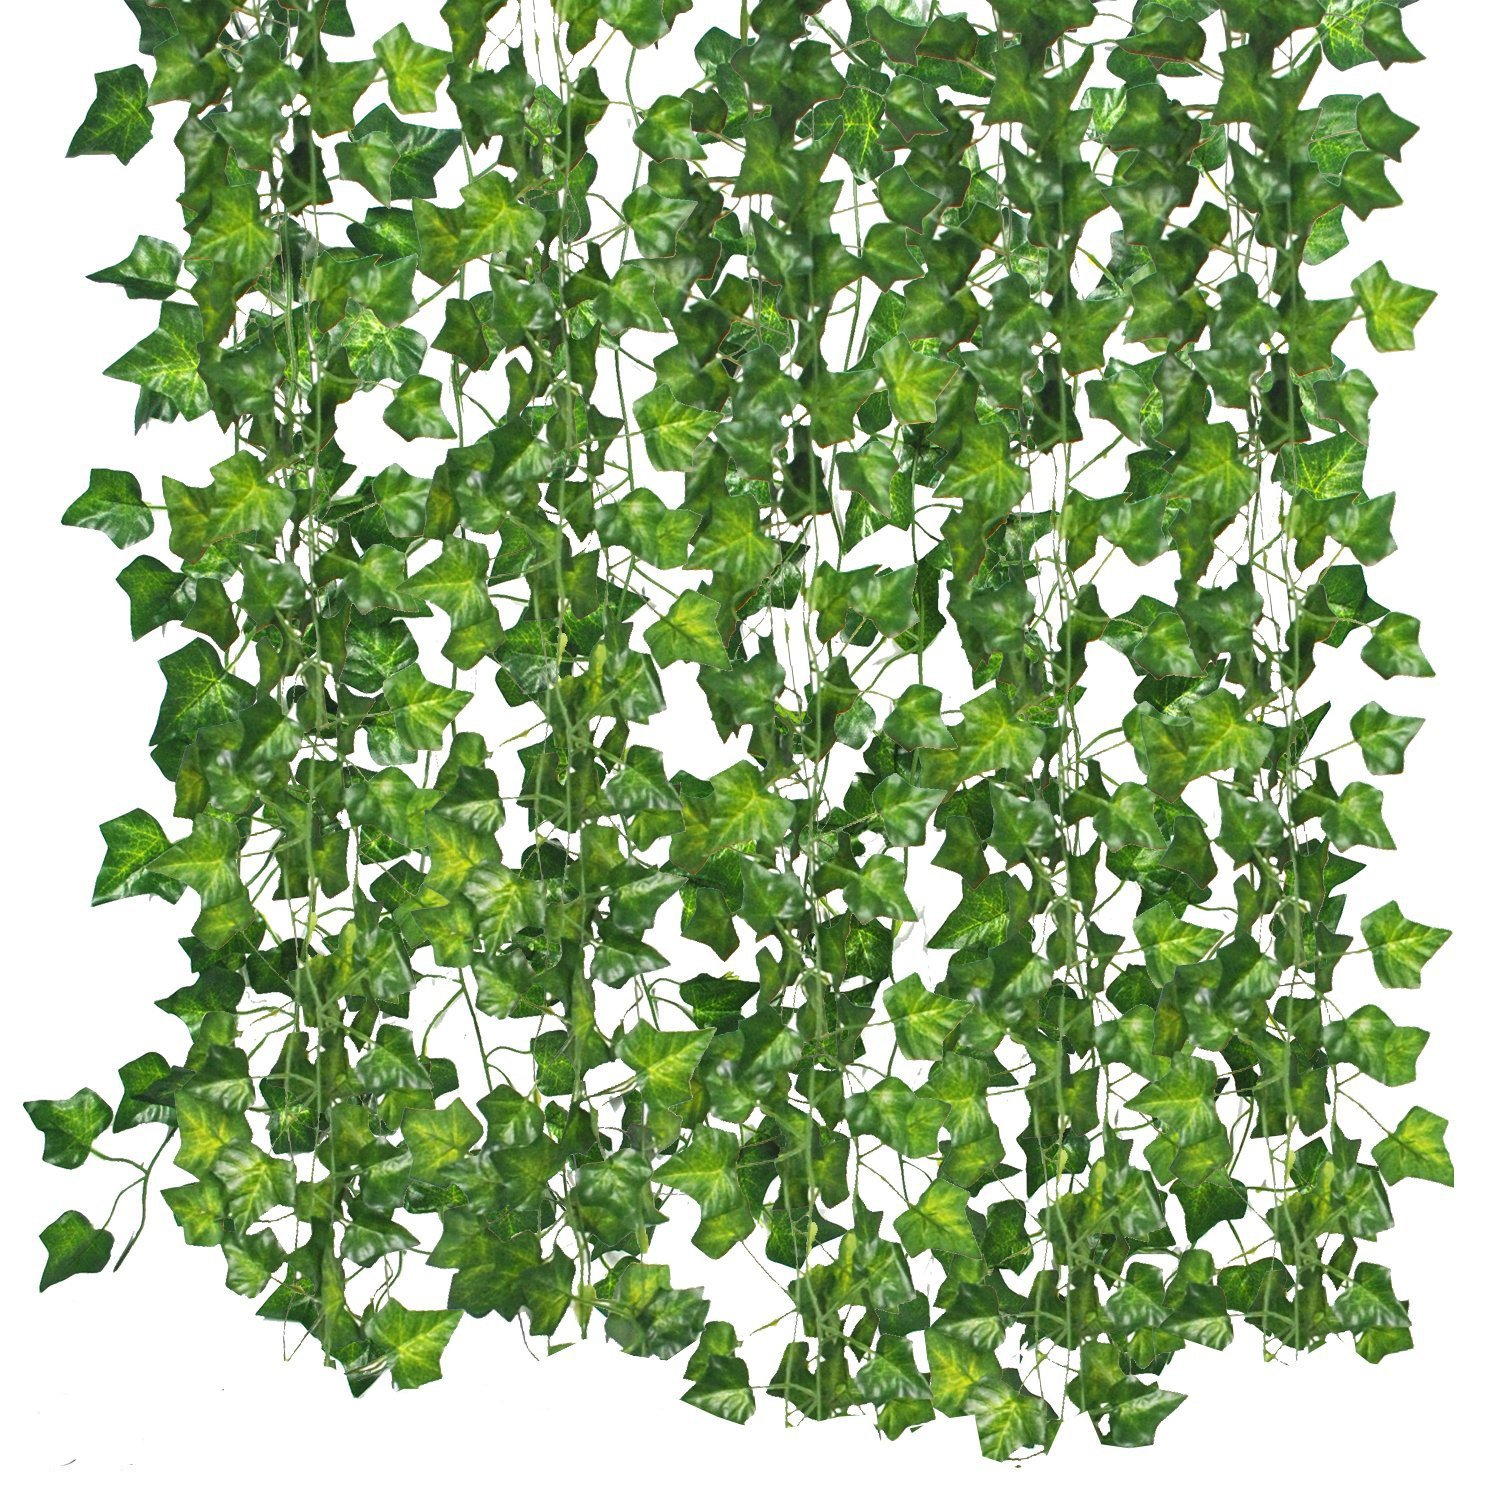 83 Ft 12pcs Artificial Greenery Fake Ivy Leaves Hanging Vine Plant Garland for Garden Wedding Party Home Wall Decoration